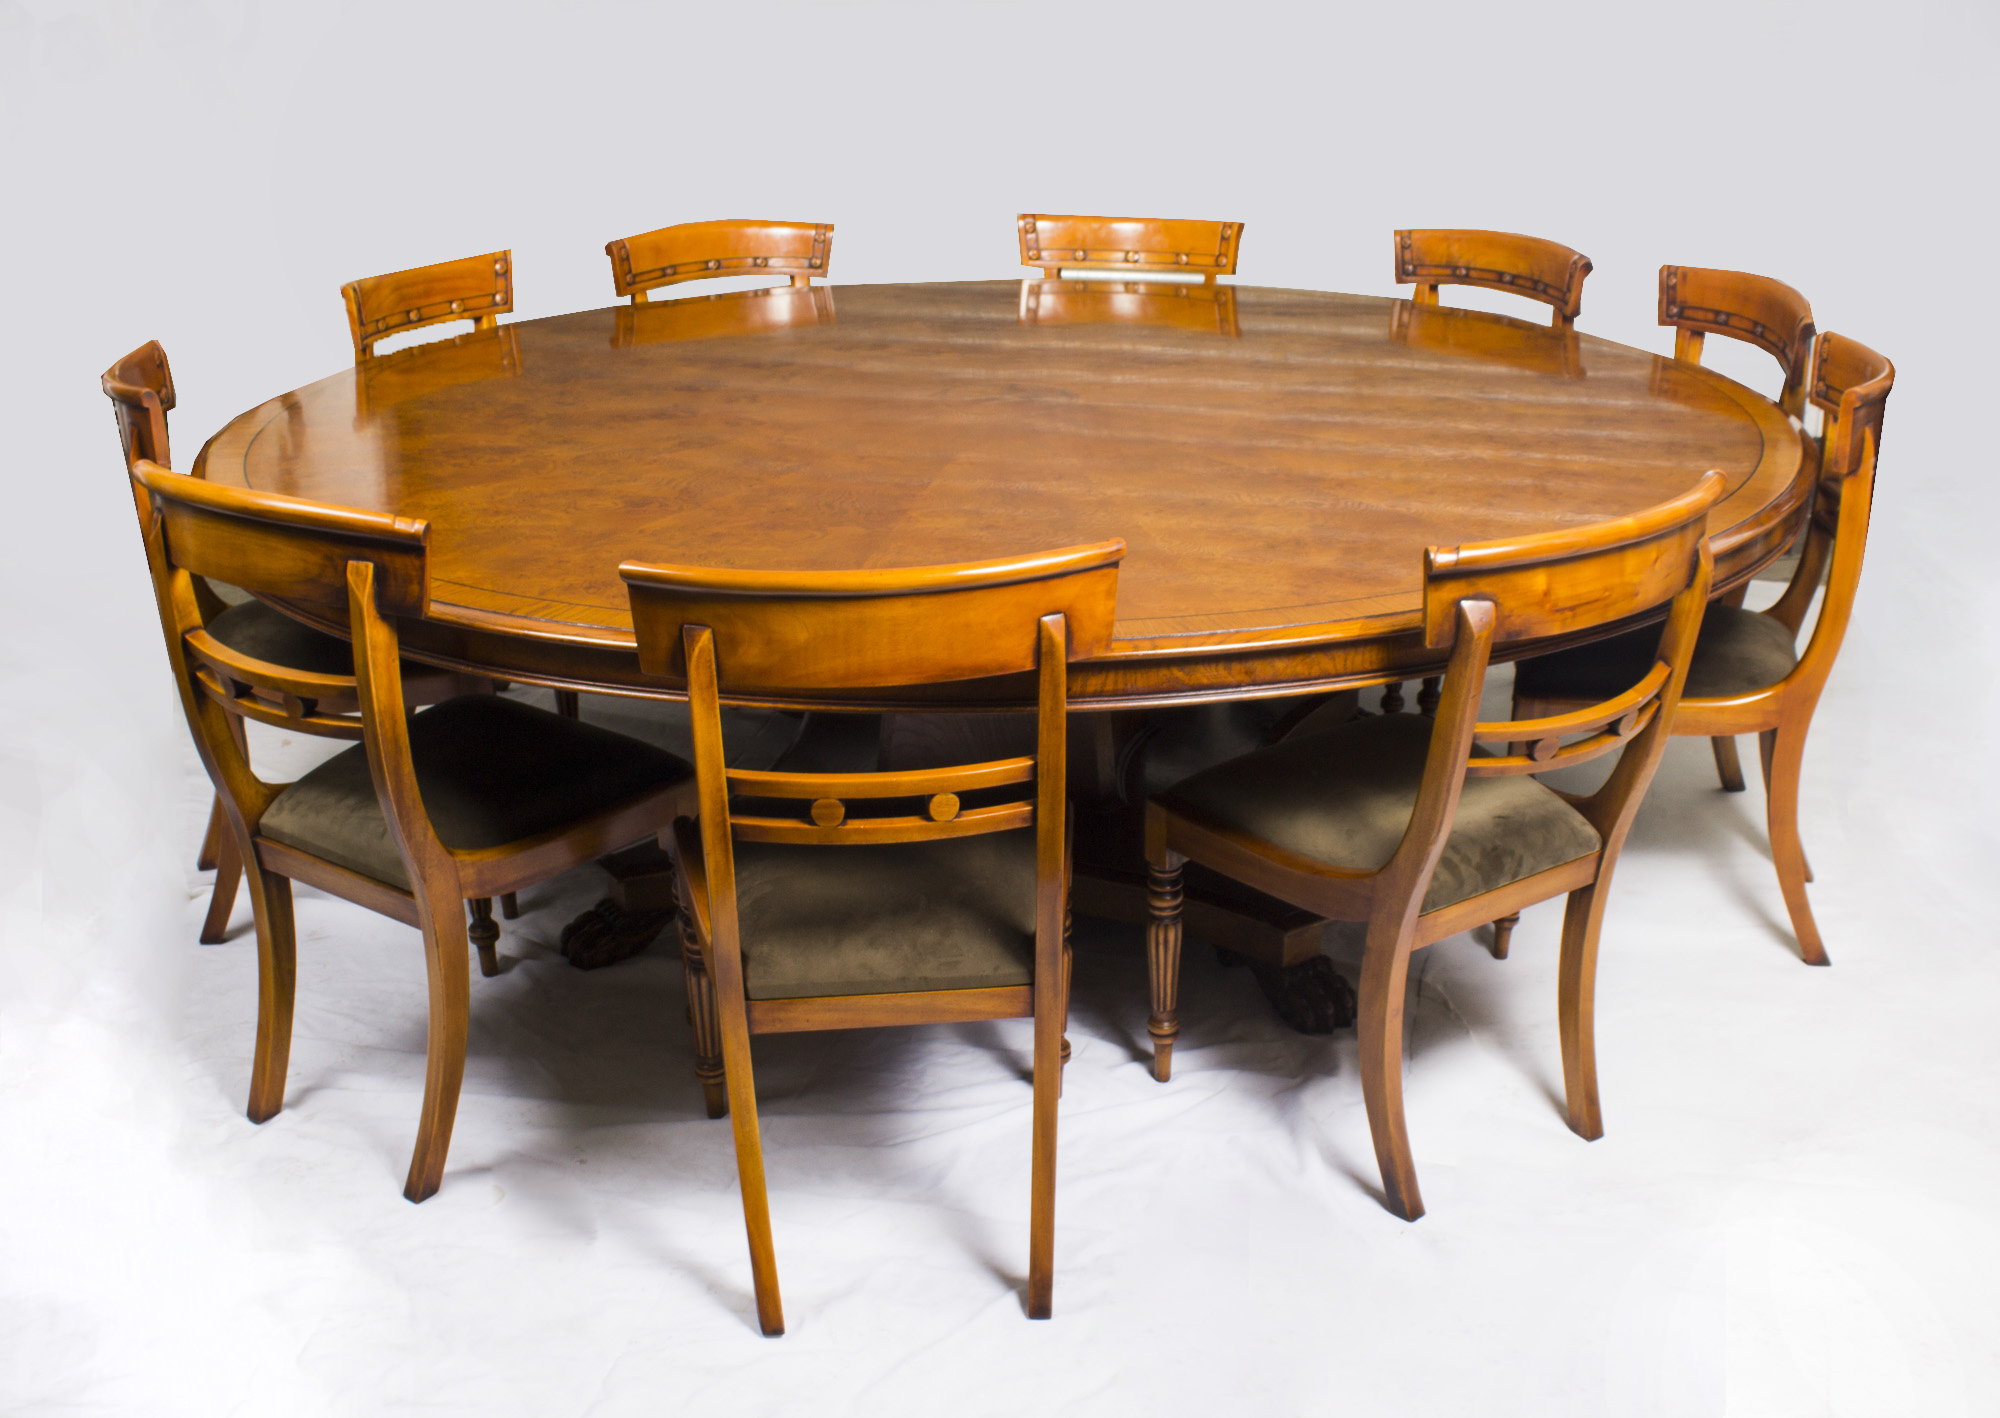 Vintage dining set 8ft diam pollard oak table 10 chairs for Hades dining table th8